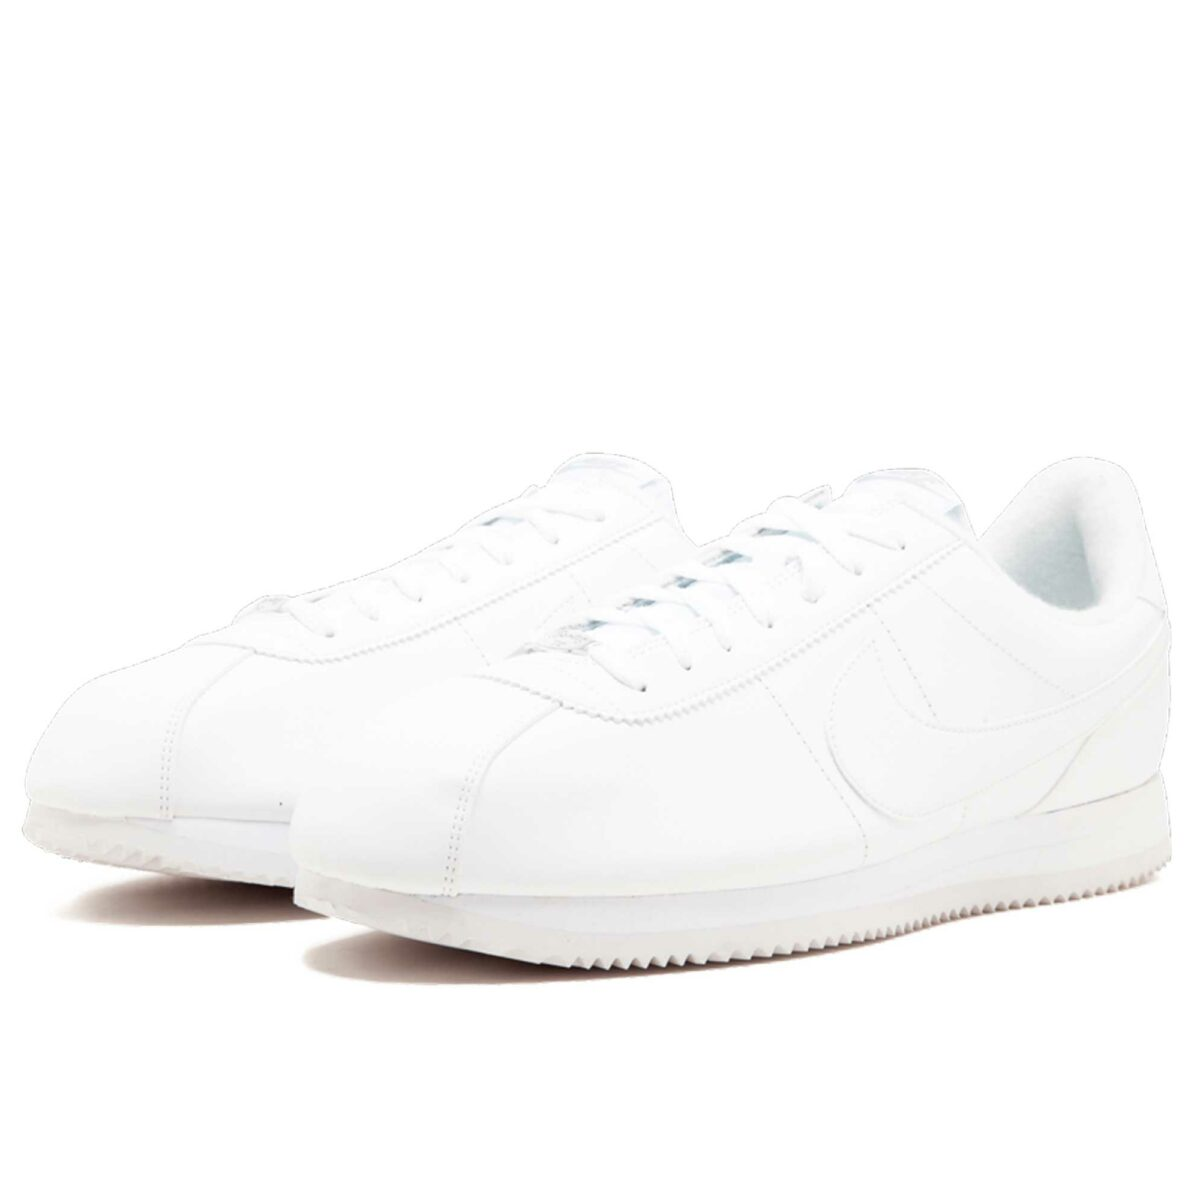 nike cortez basic leather white 819719_110 купить